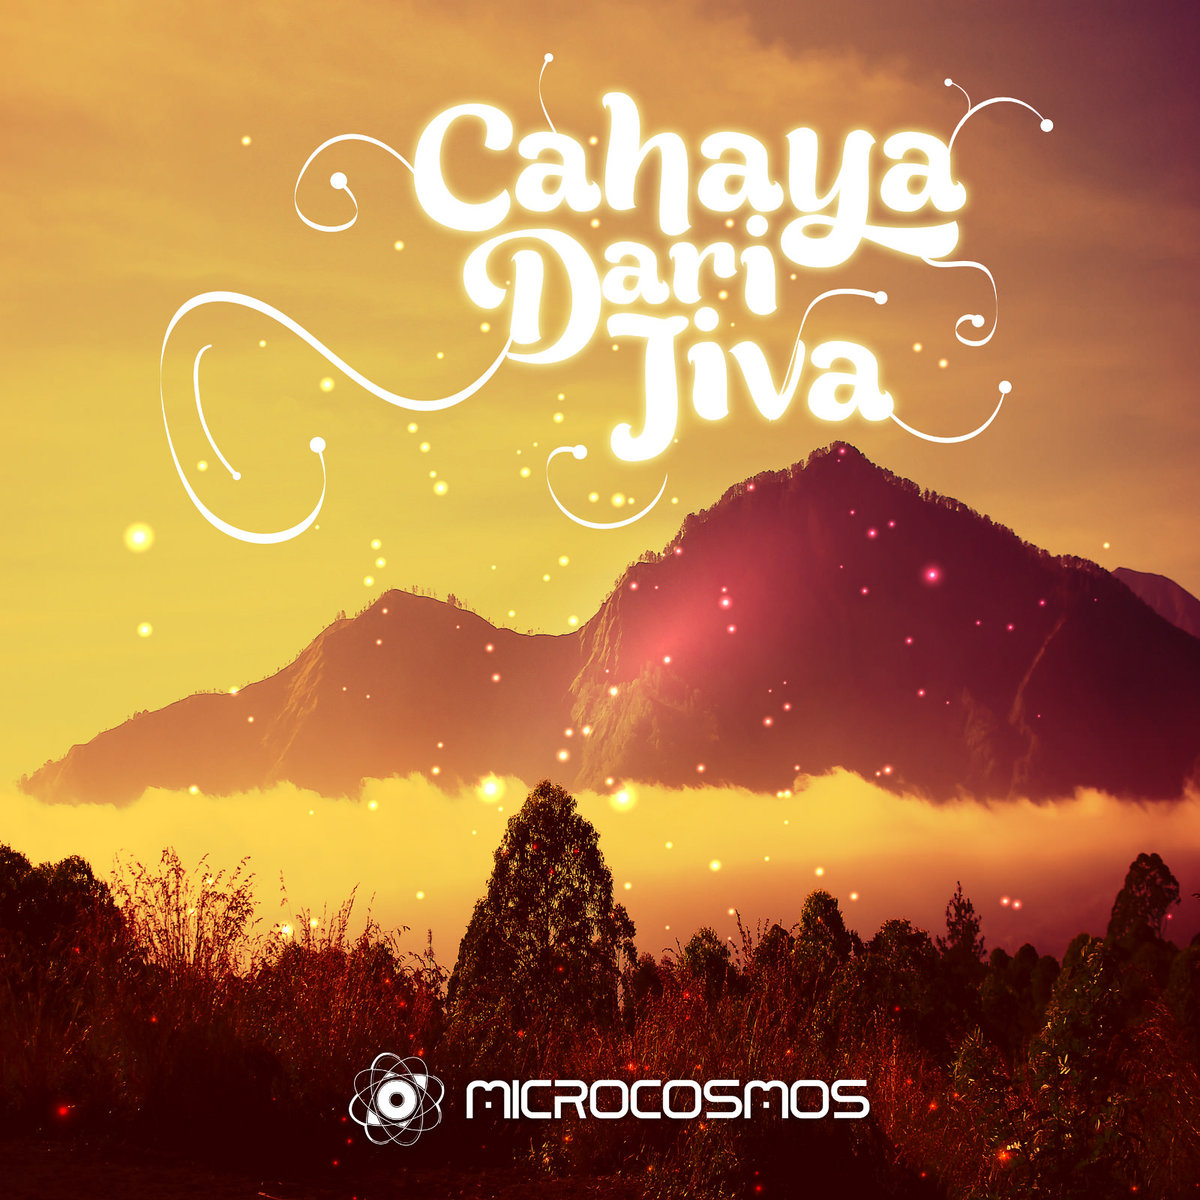 Heliopatis - Recognition of Emptiness @ 'Various Artists - Cahaya Dari Jiva' album (ambient, chill-out)